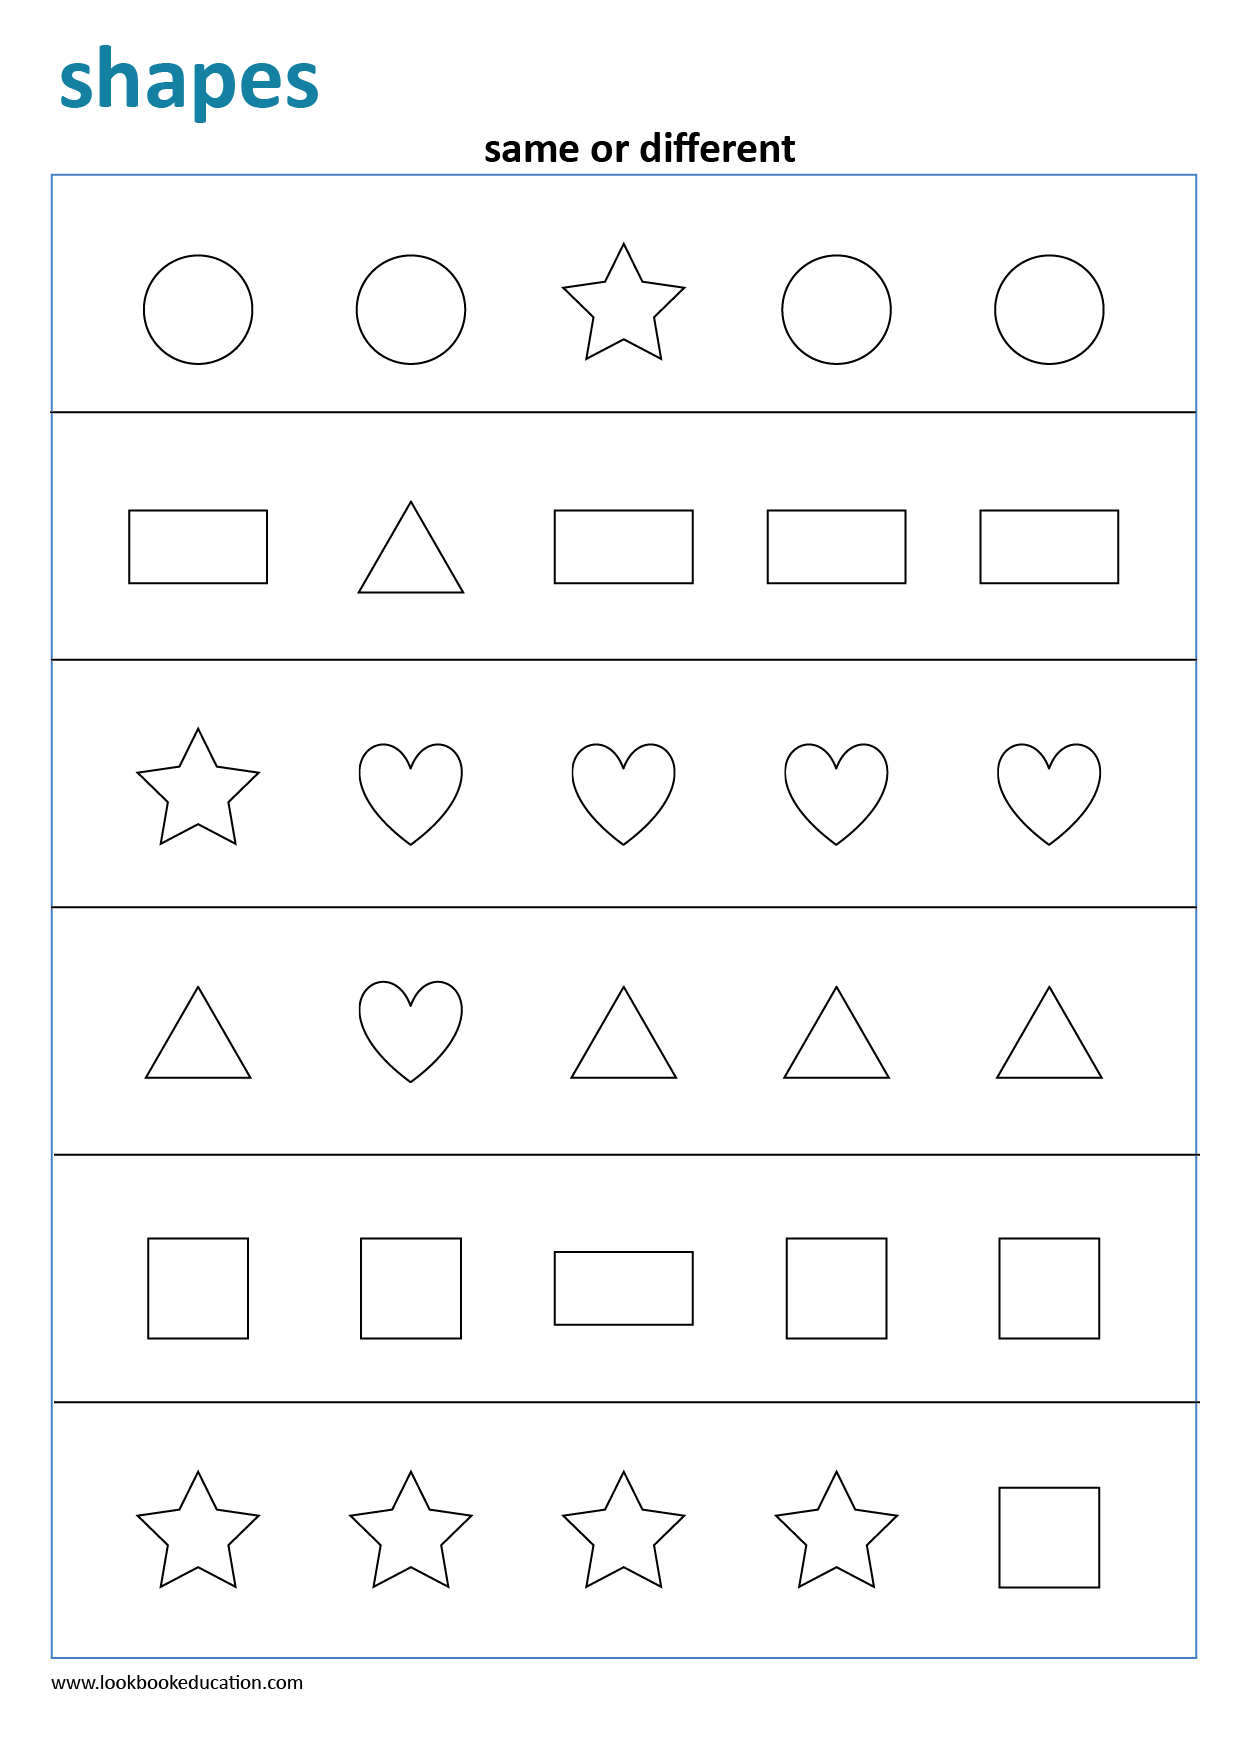 Same Or Different Shapes Worksheet